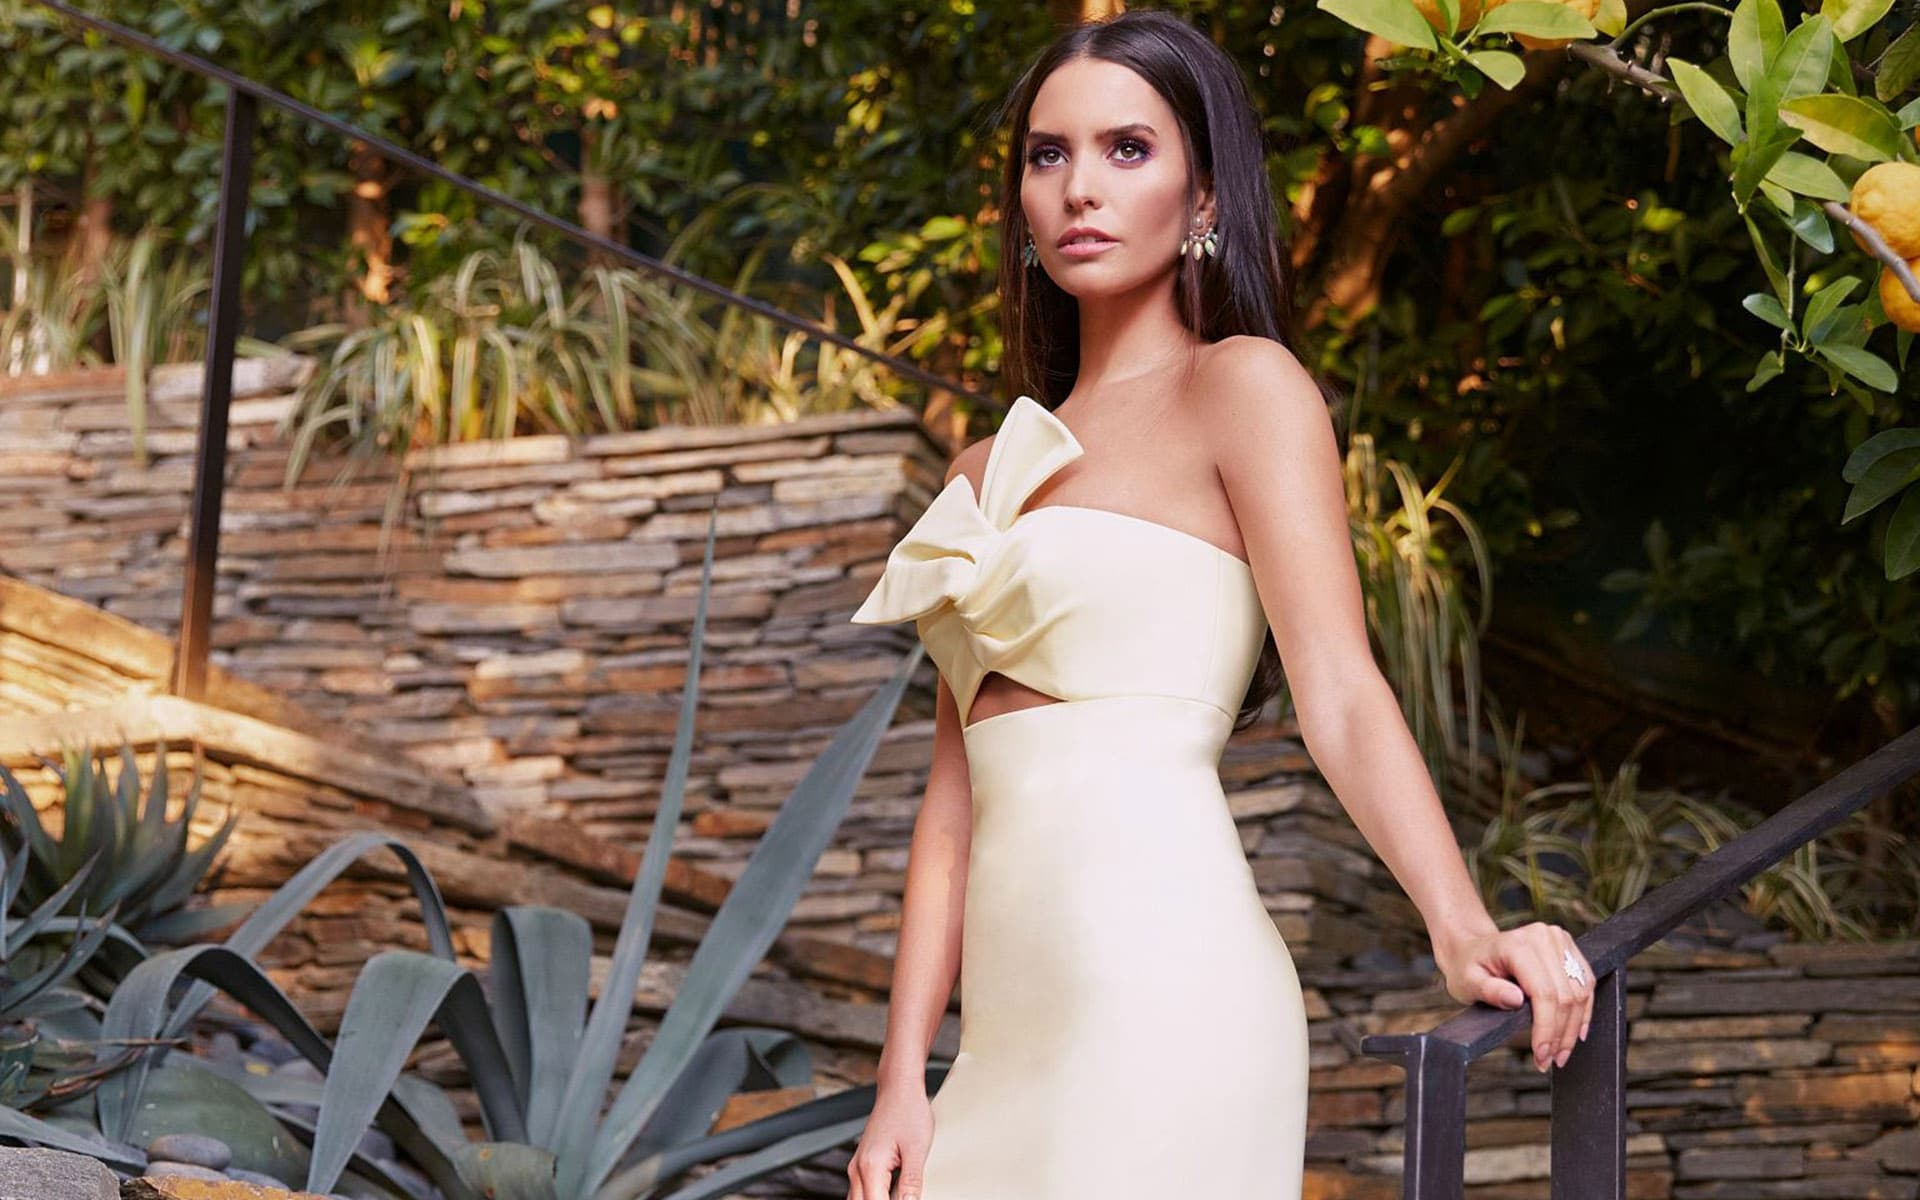 Usa Wallpaper Hd Genesis Rodriguez Wallpapers Hd Images And Pictures High